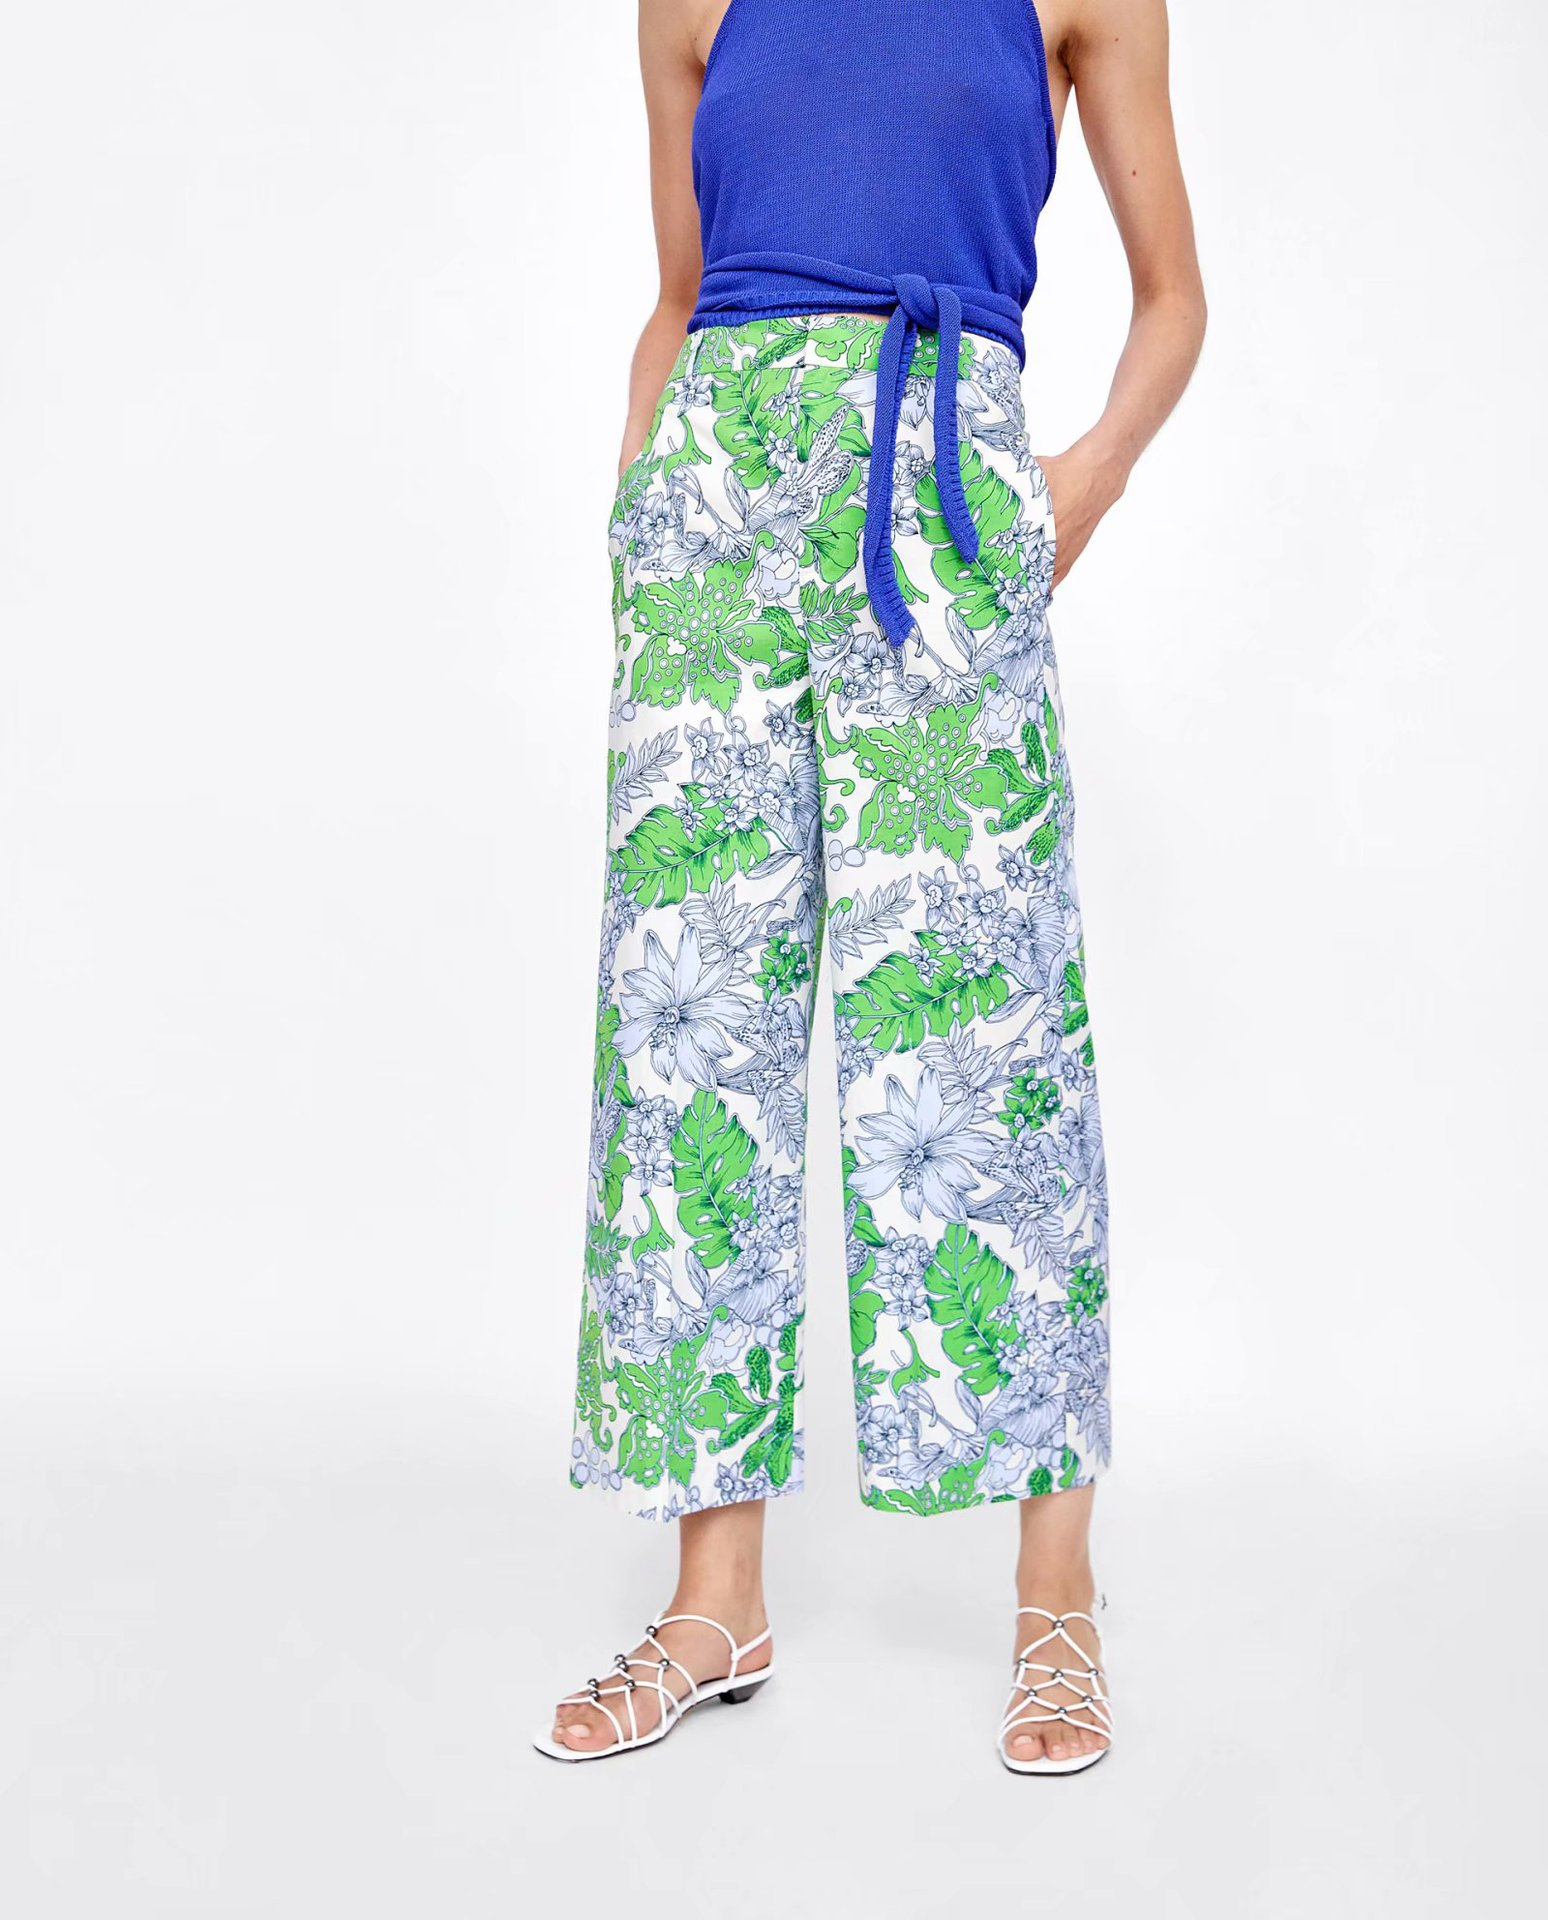 Chiffon Fashionpants(Picture color -S) NHAM4456-Picture-color-S